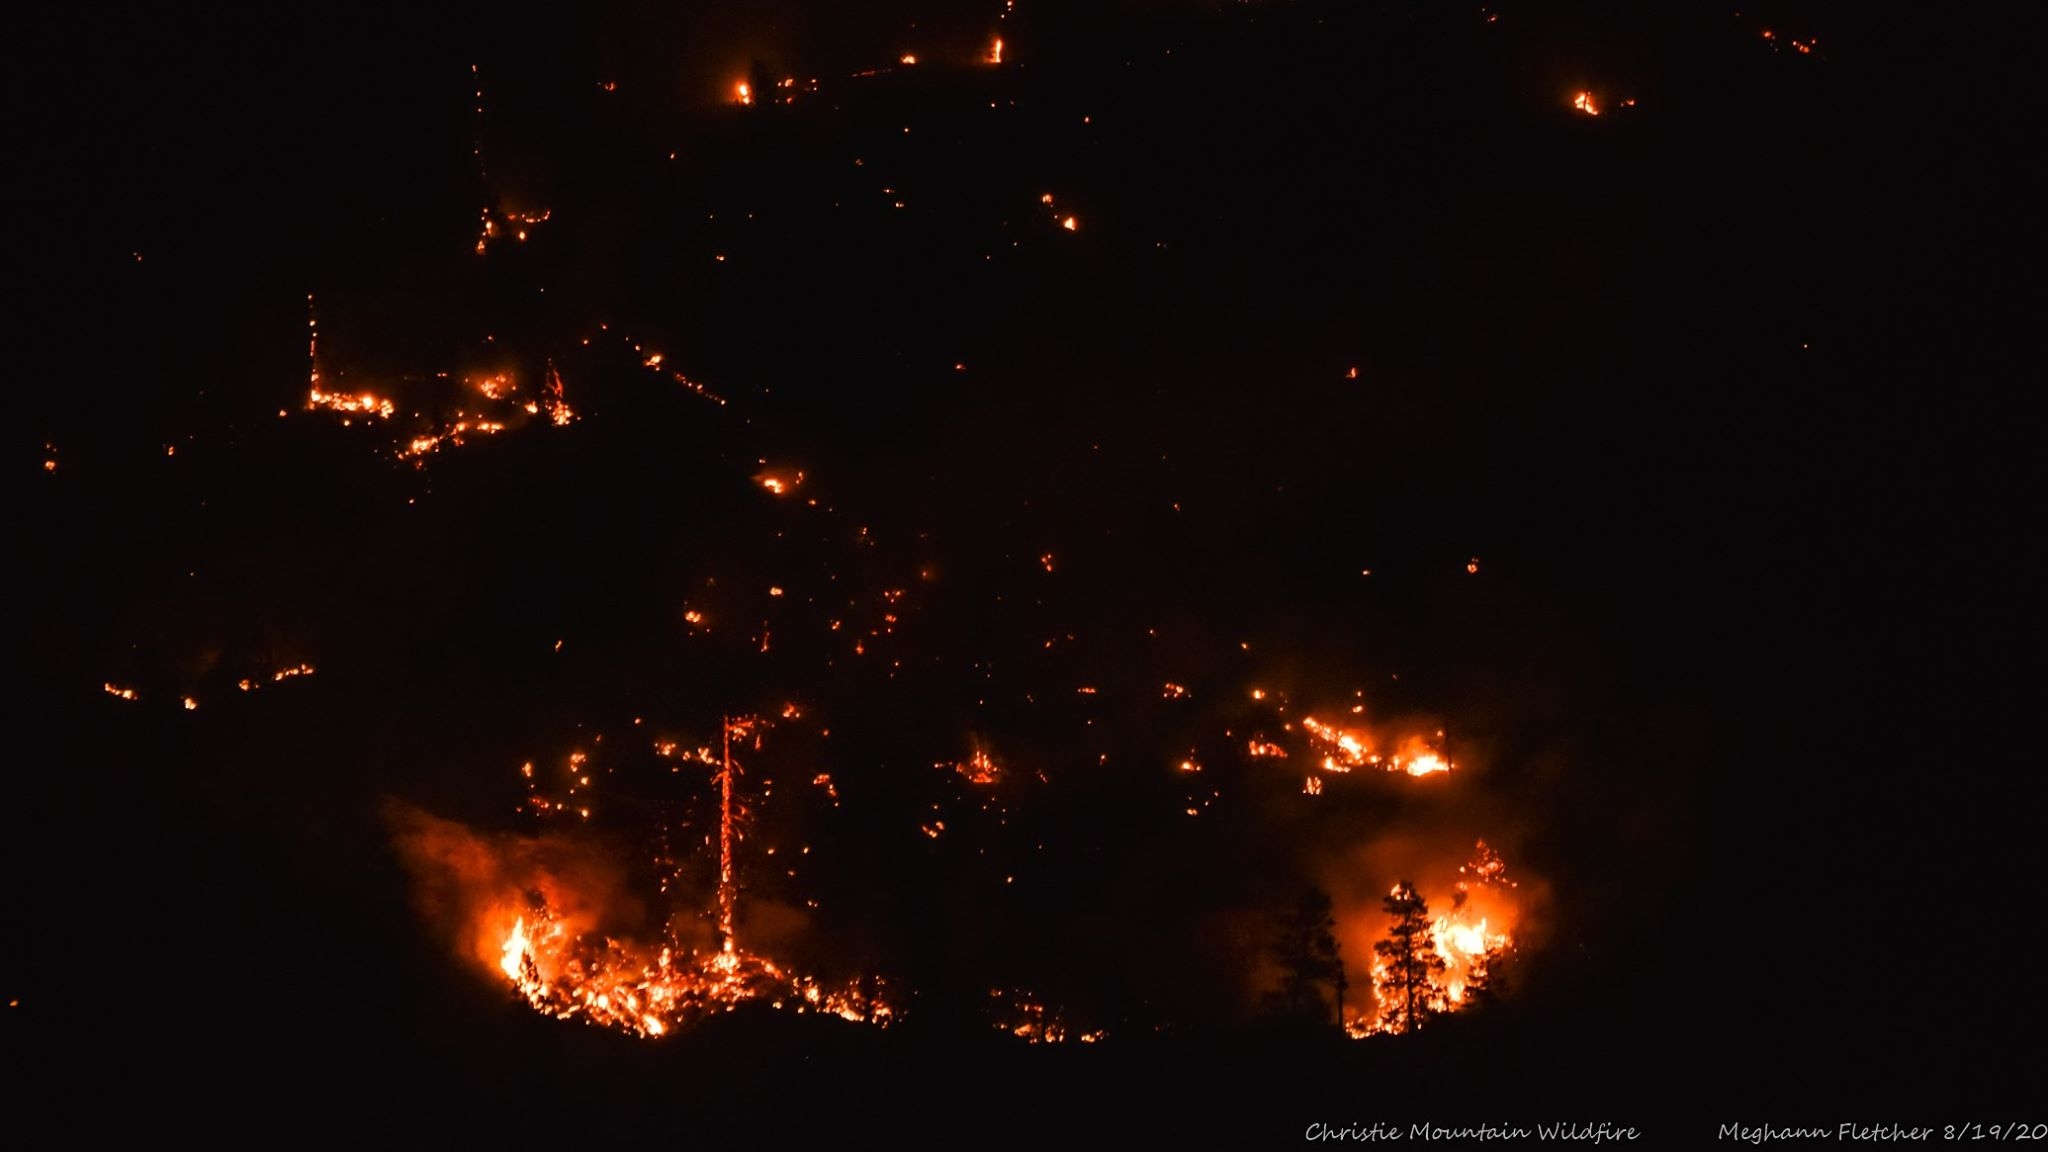 A wildfire burns after dark